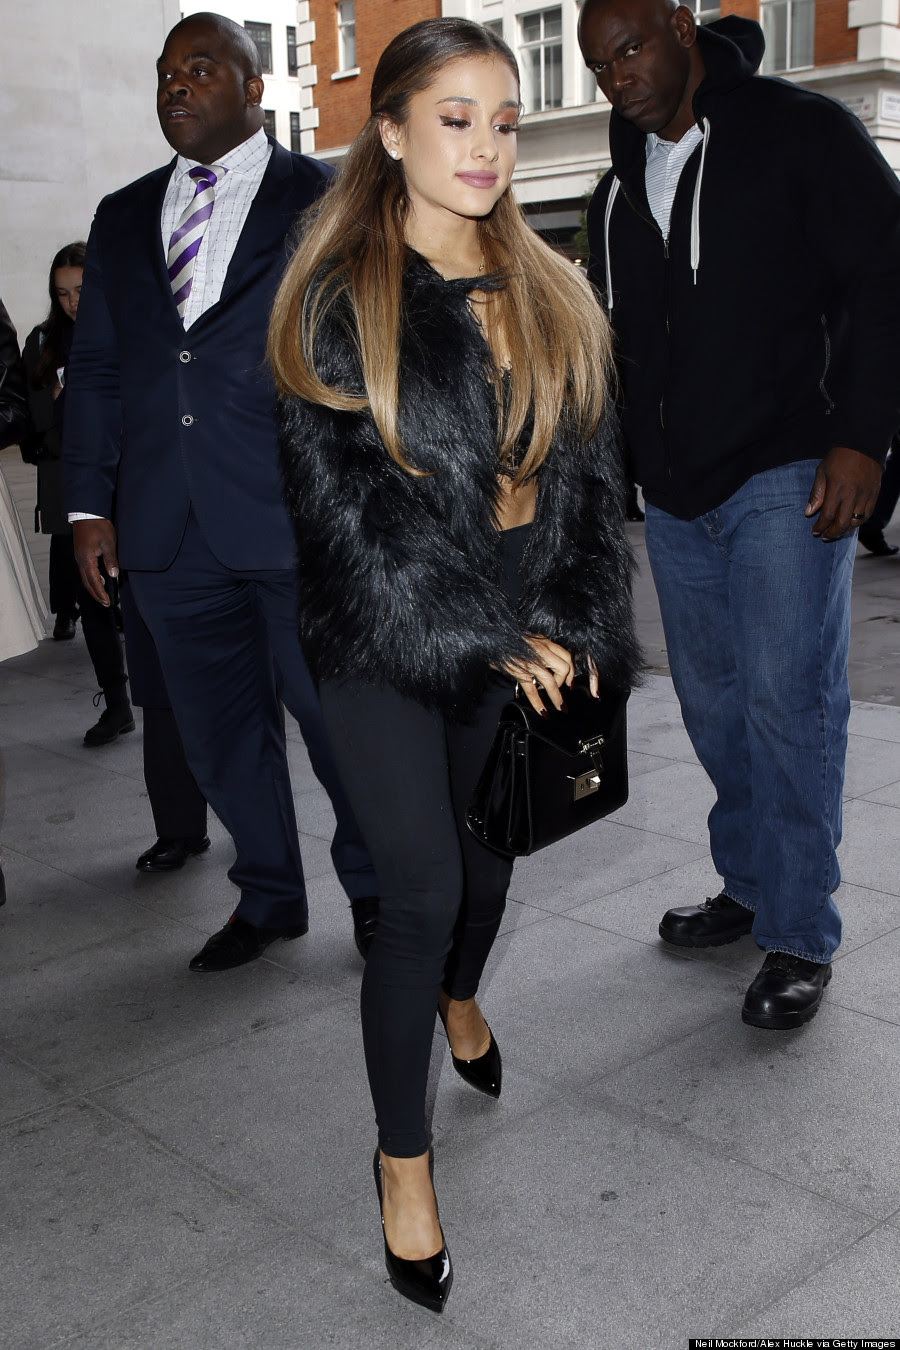 ariana grande changes her signature hairstyle for a hot minute